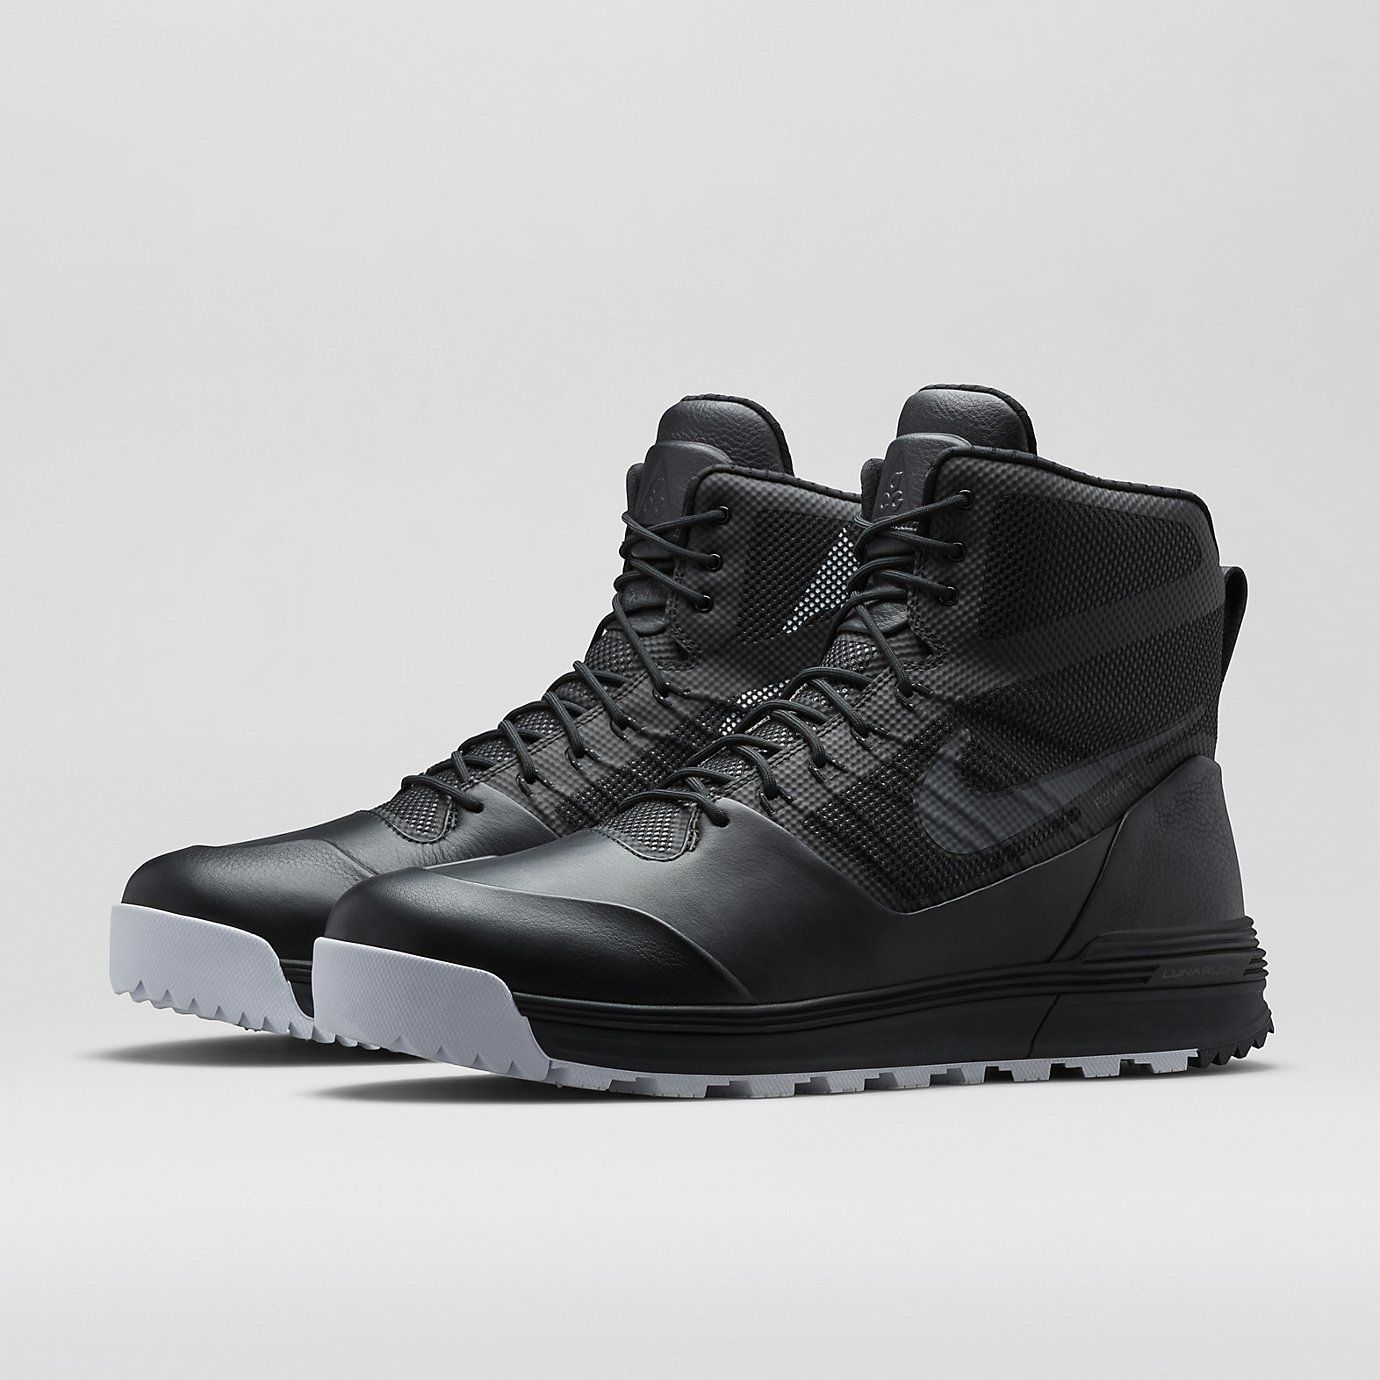 nike men's boots